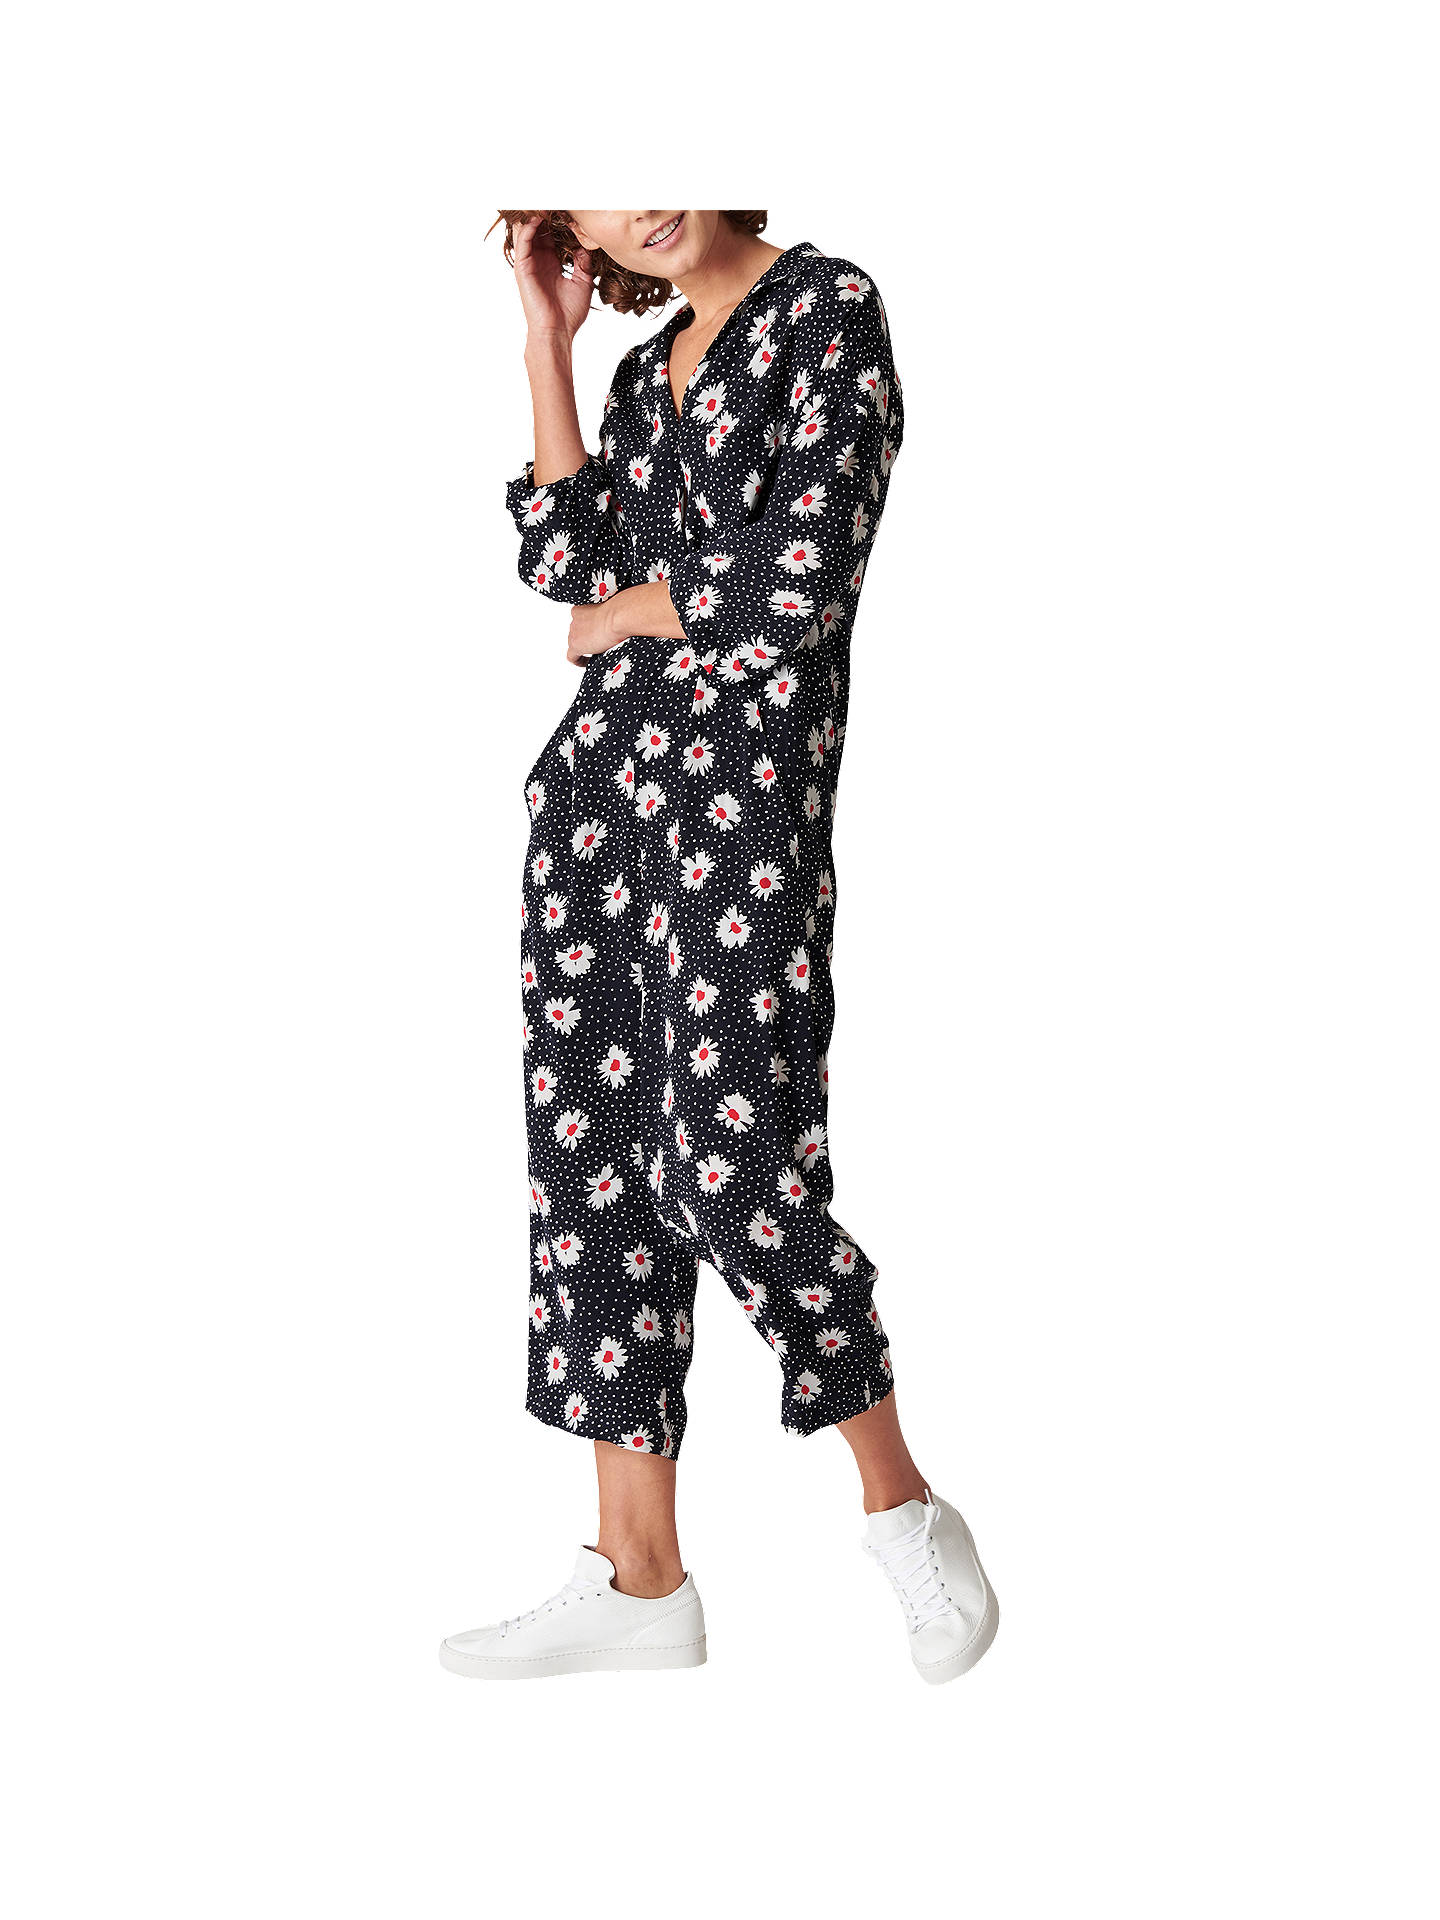 buy online usa cheap sale vivid and great in style Whistles Daisy Spot Jumpsuit, Multi at John Lewis & Partners